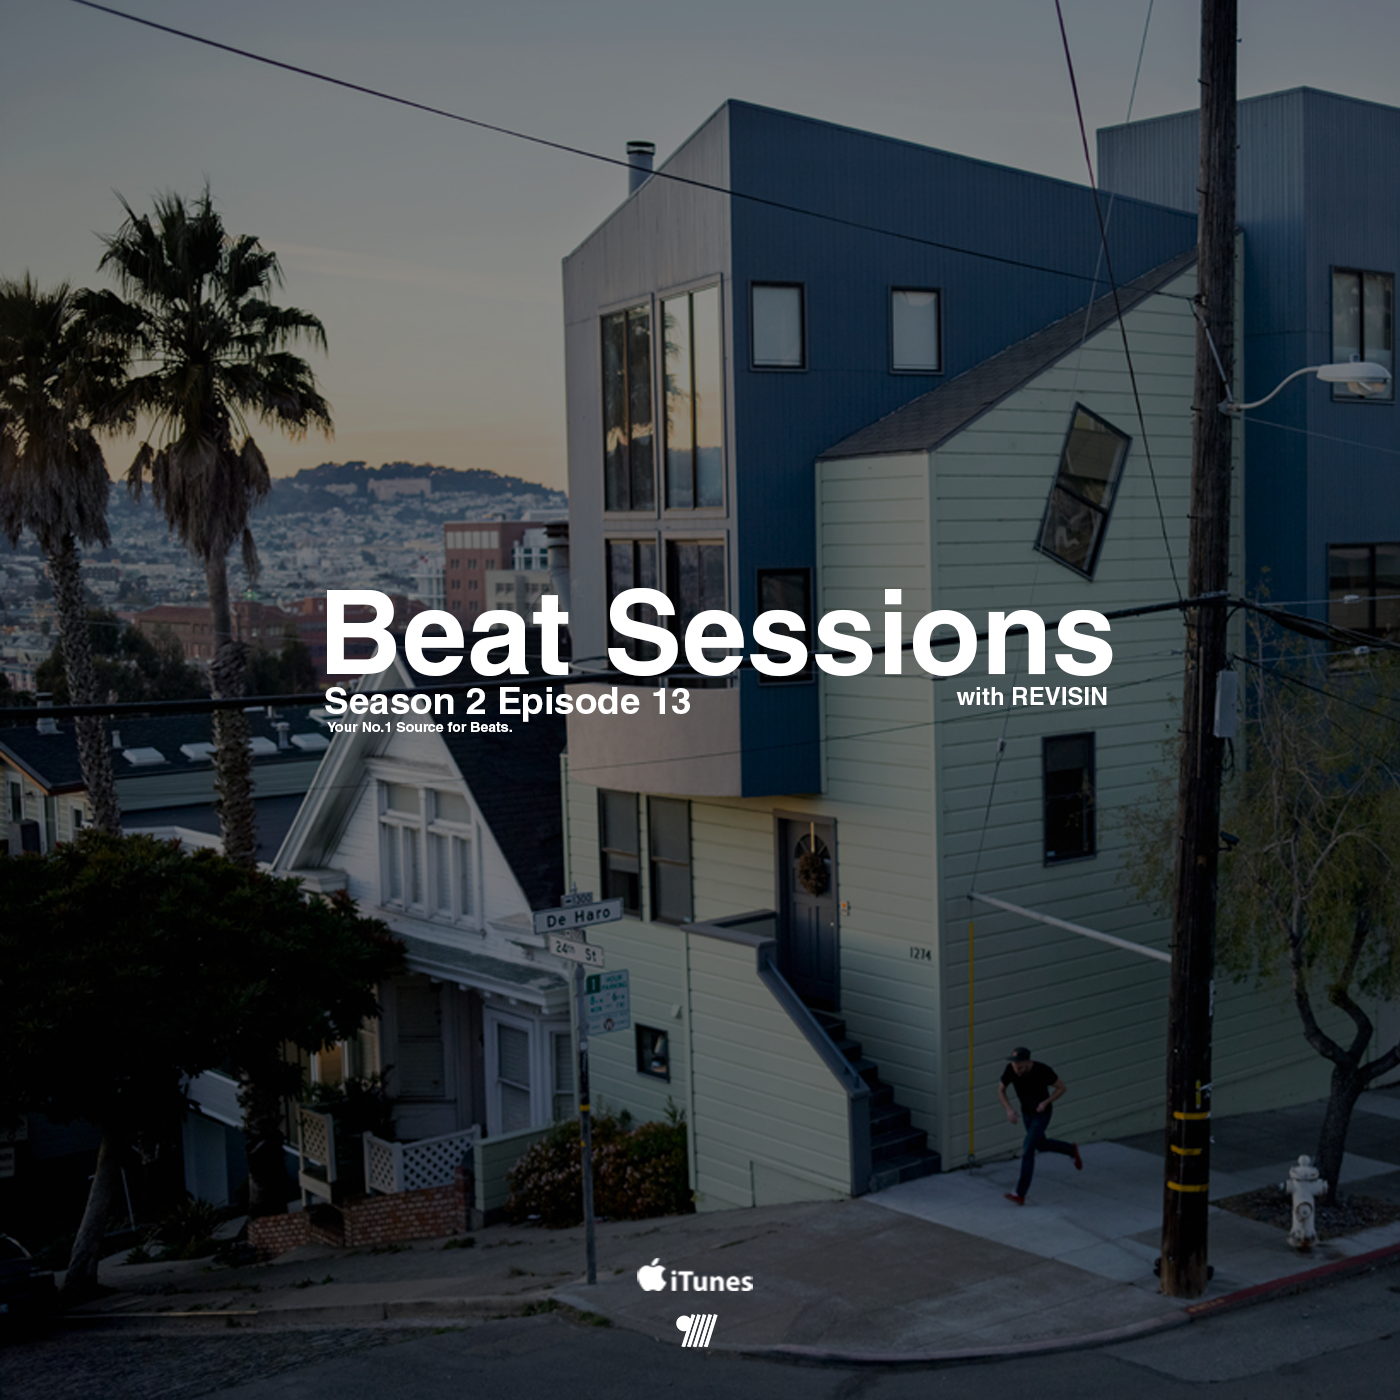 Beat Sessions - Season 2 Episode 13